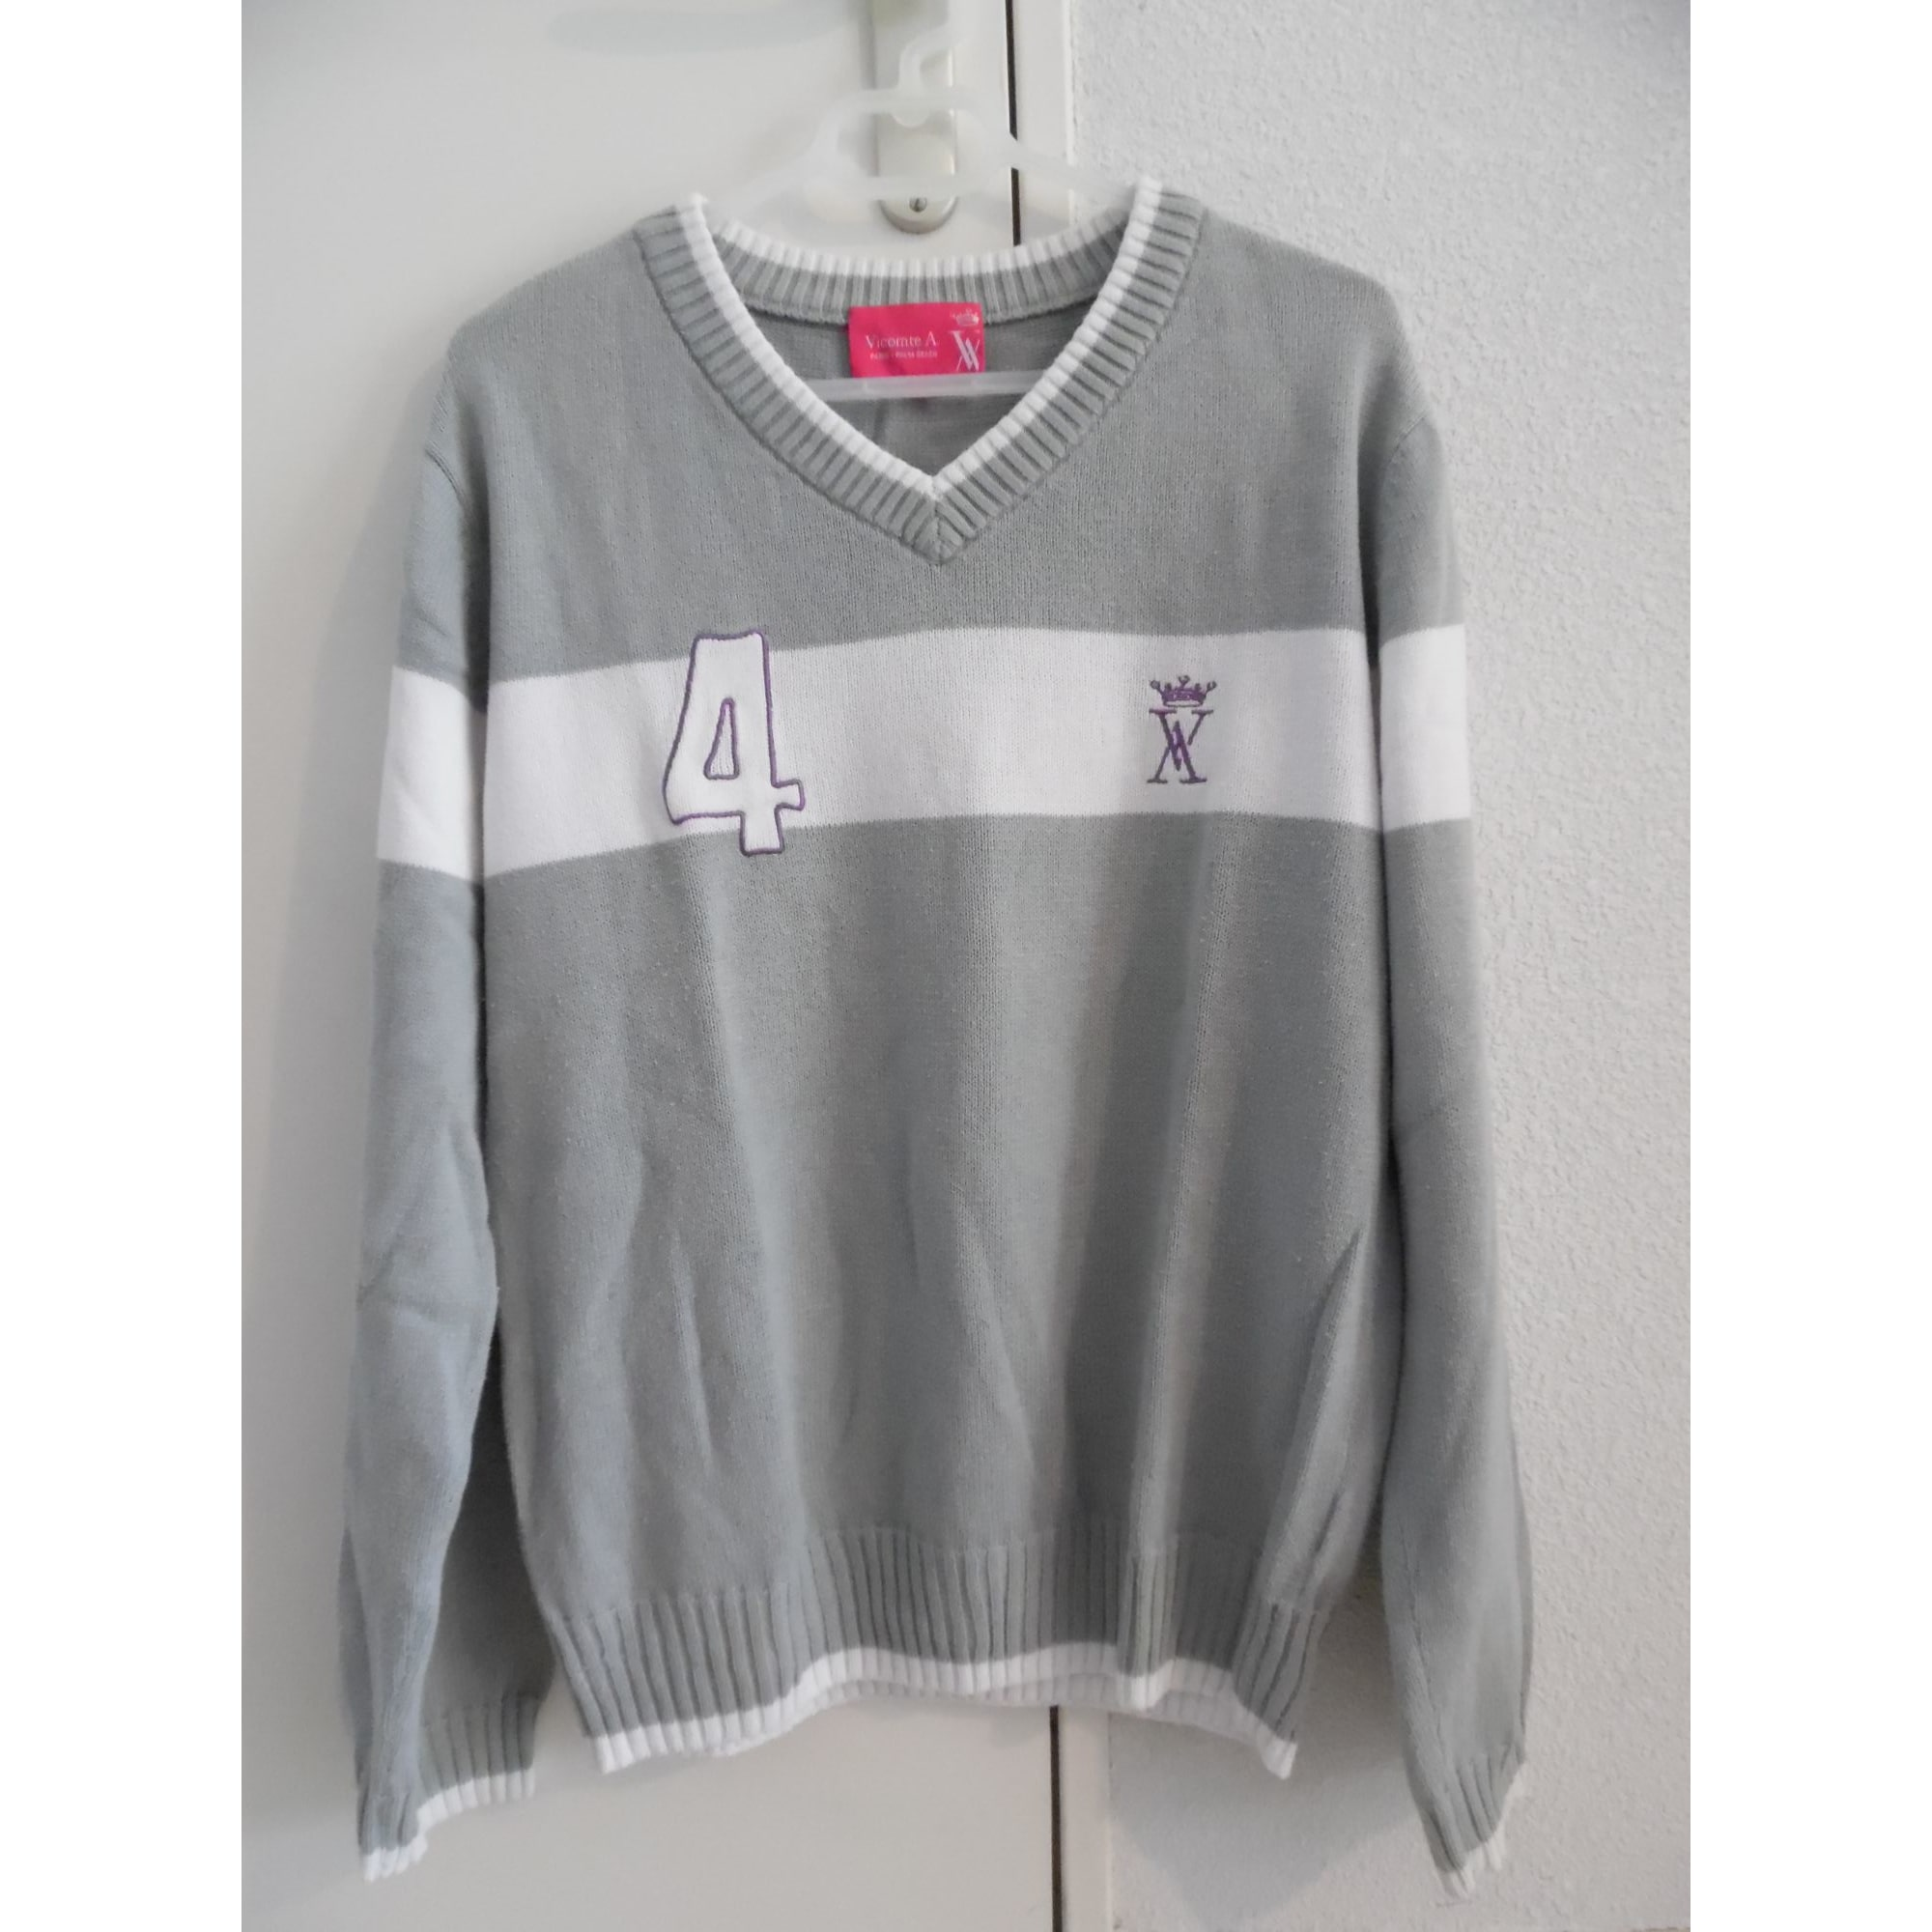 Pull VICOMTE A. Gris, anthracite